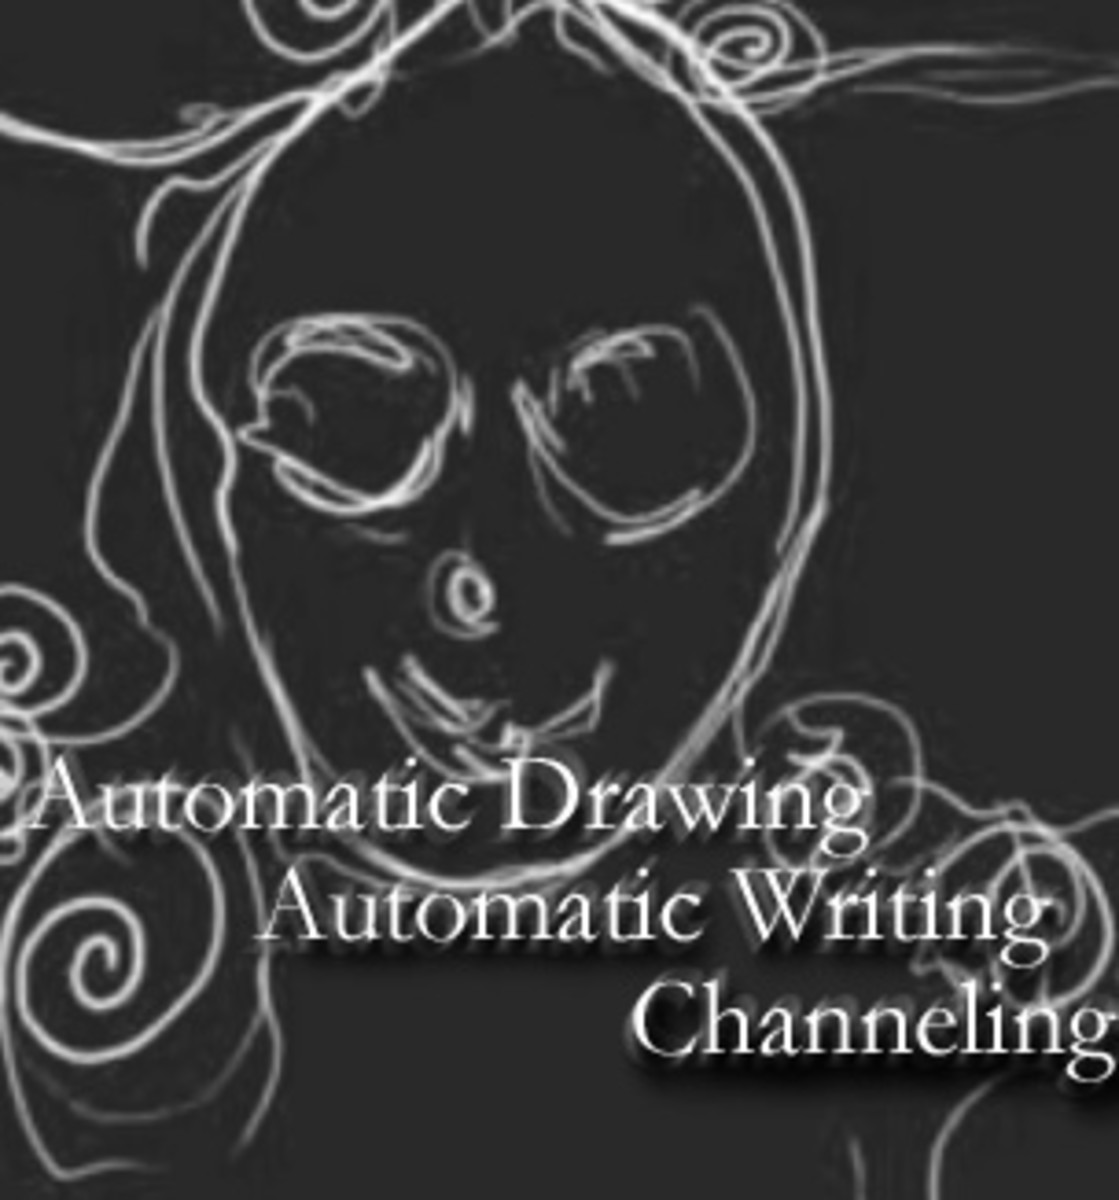 Channeling and Automatic Drawing How To